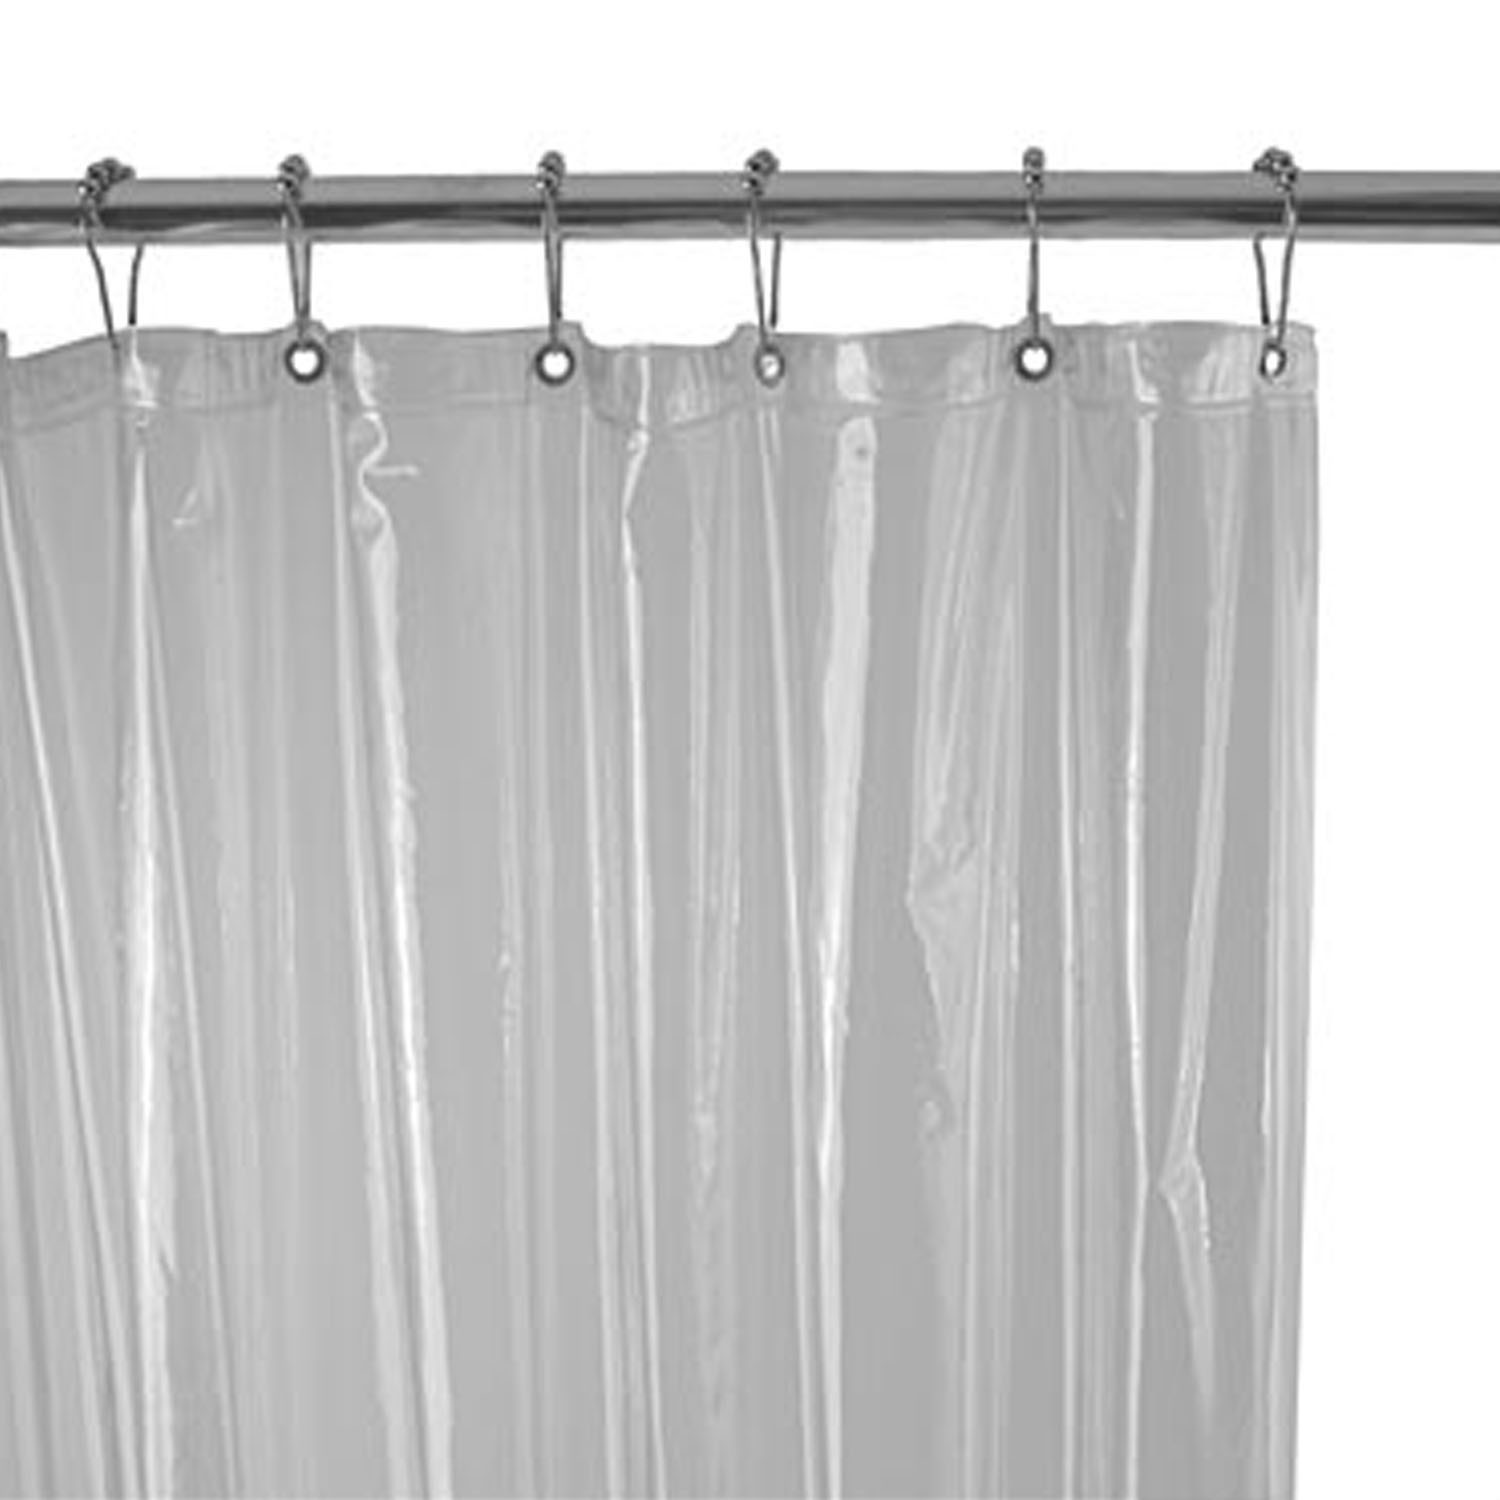 Walmart Shower Curtain Liner | Short Shower Curtain Liner | Shower Curtain Liner